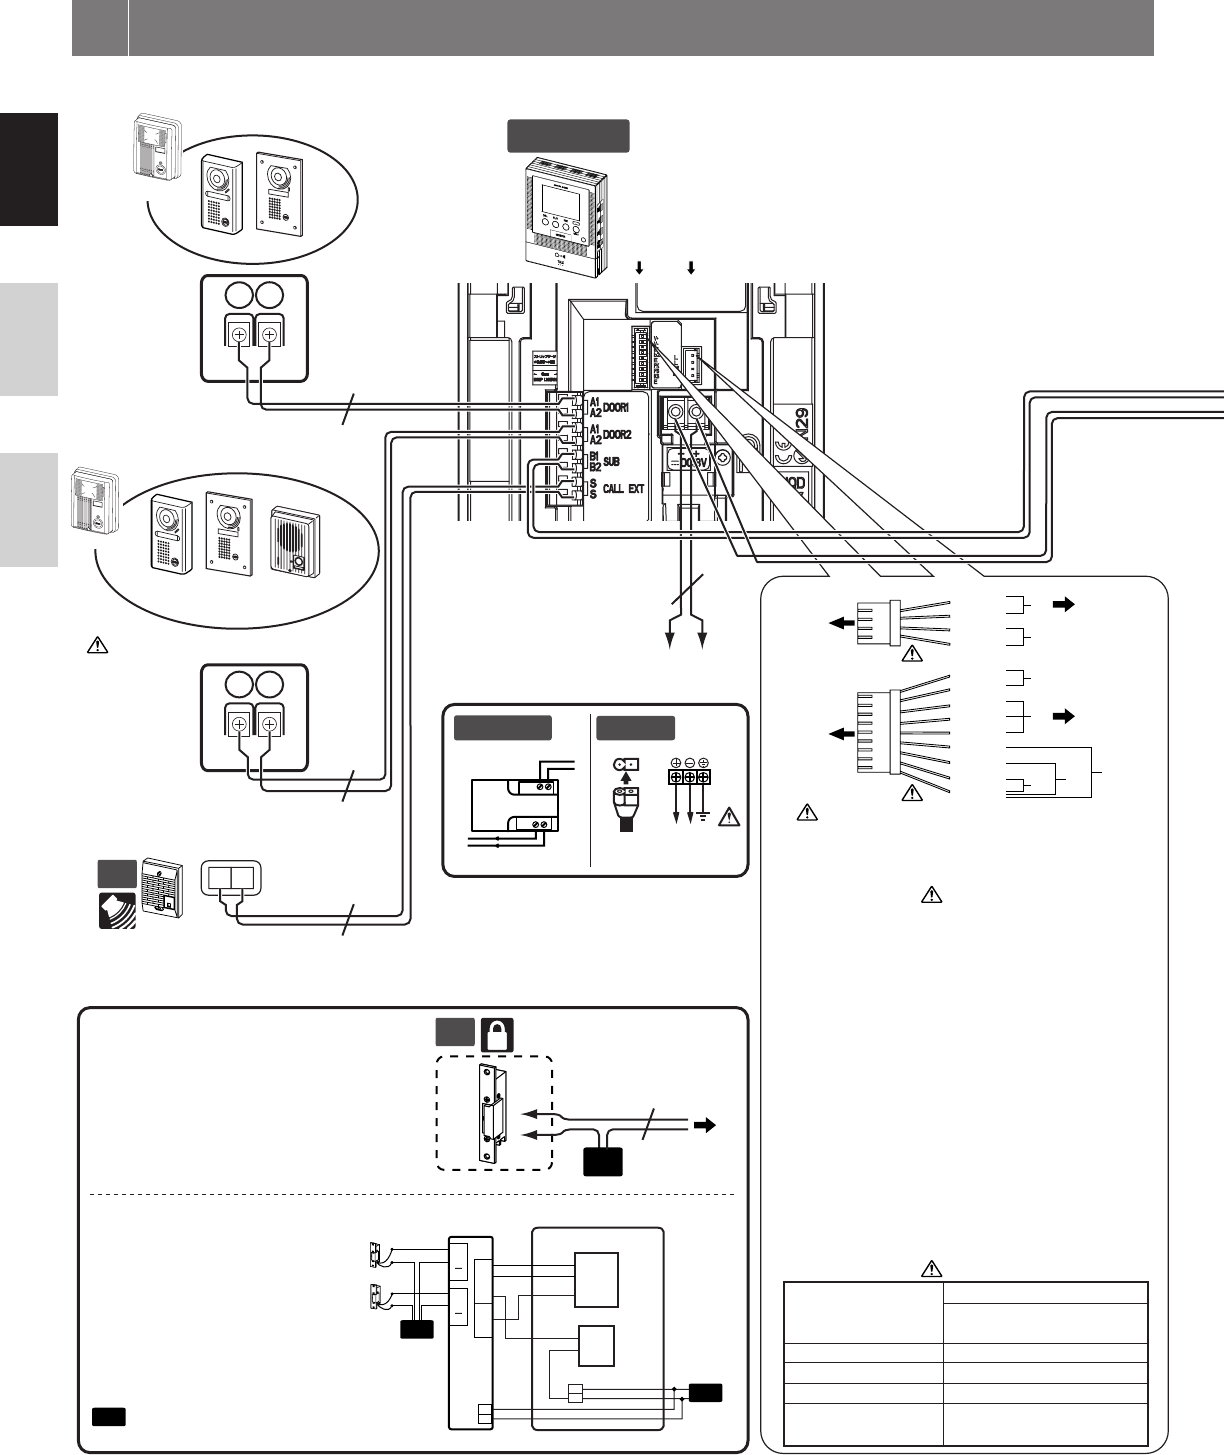 bfb05761 b44c 422c 9473 8156de703524 bg4 page 4 of aiphone intercom system jf 2med user guide  at reclaimingppi.co